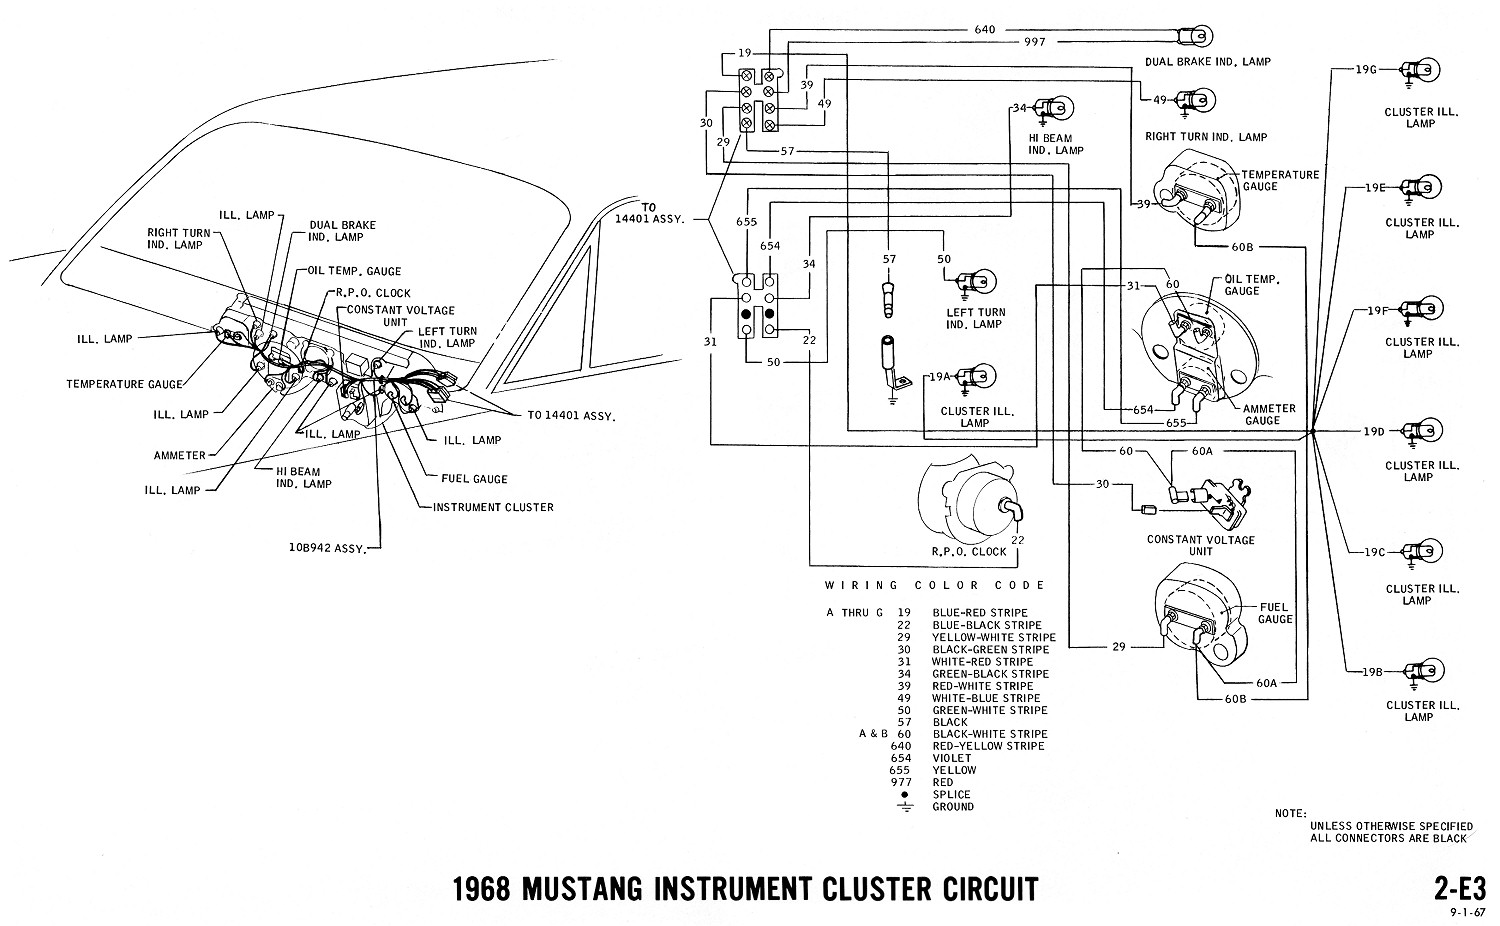 1968 Mustang Wiring Diagrams on 2000 mustang engine diagram